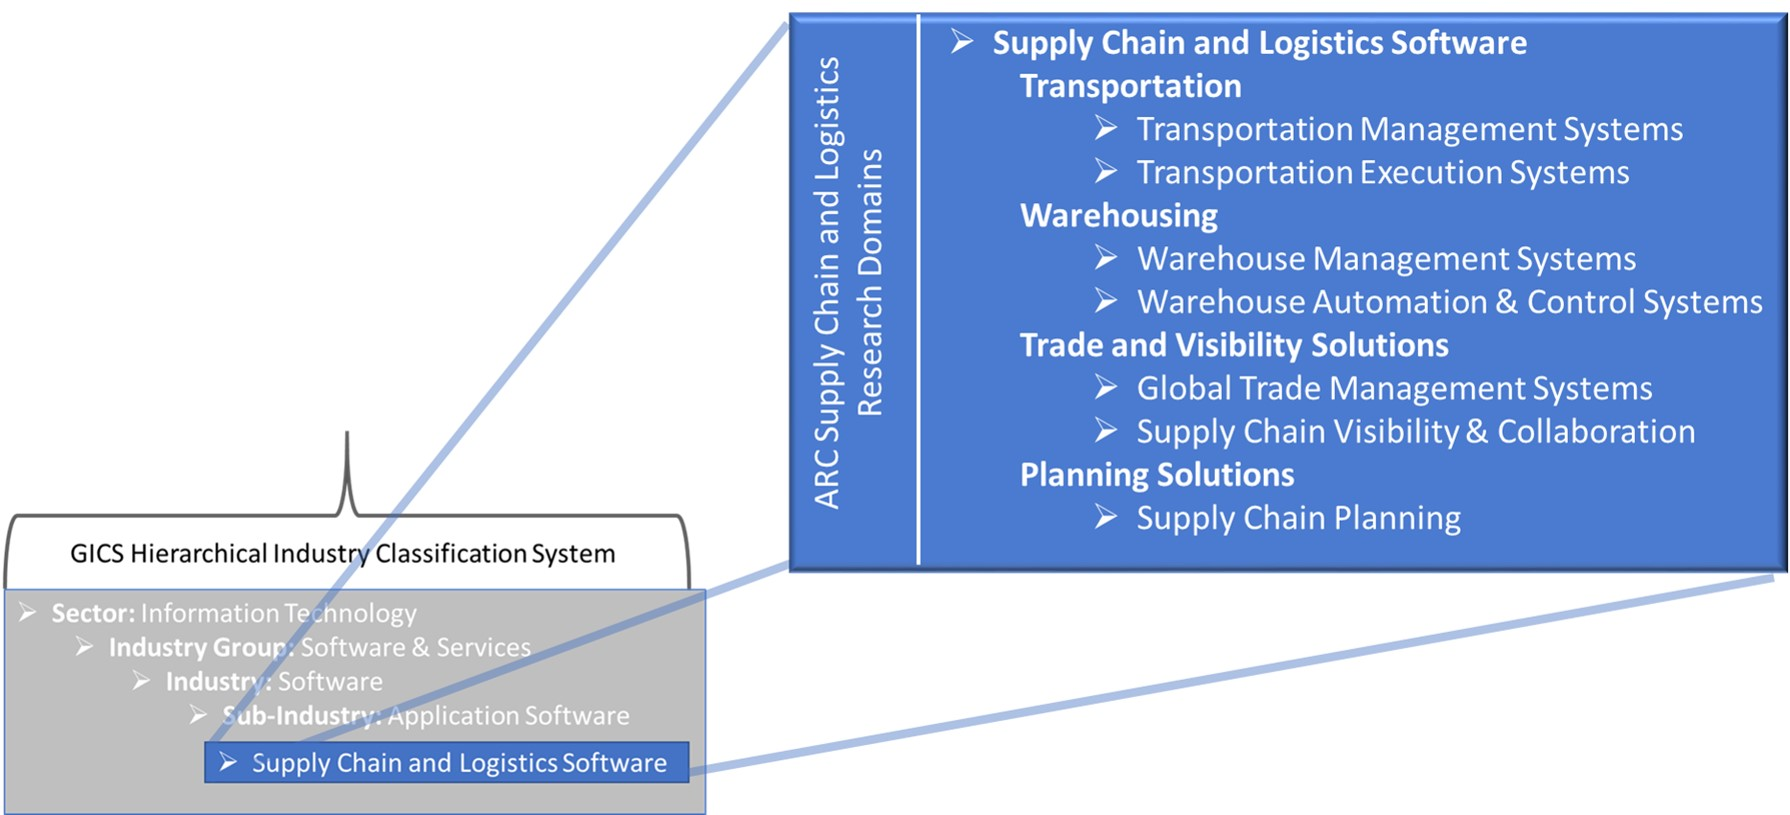 Logistics Technology Industry Research – The Key to Informed